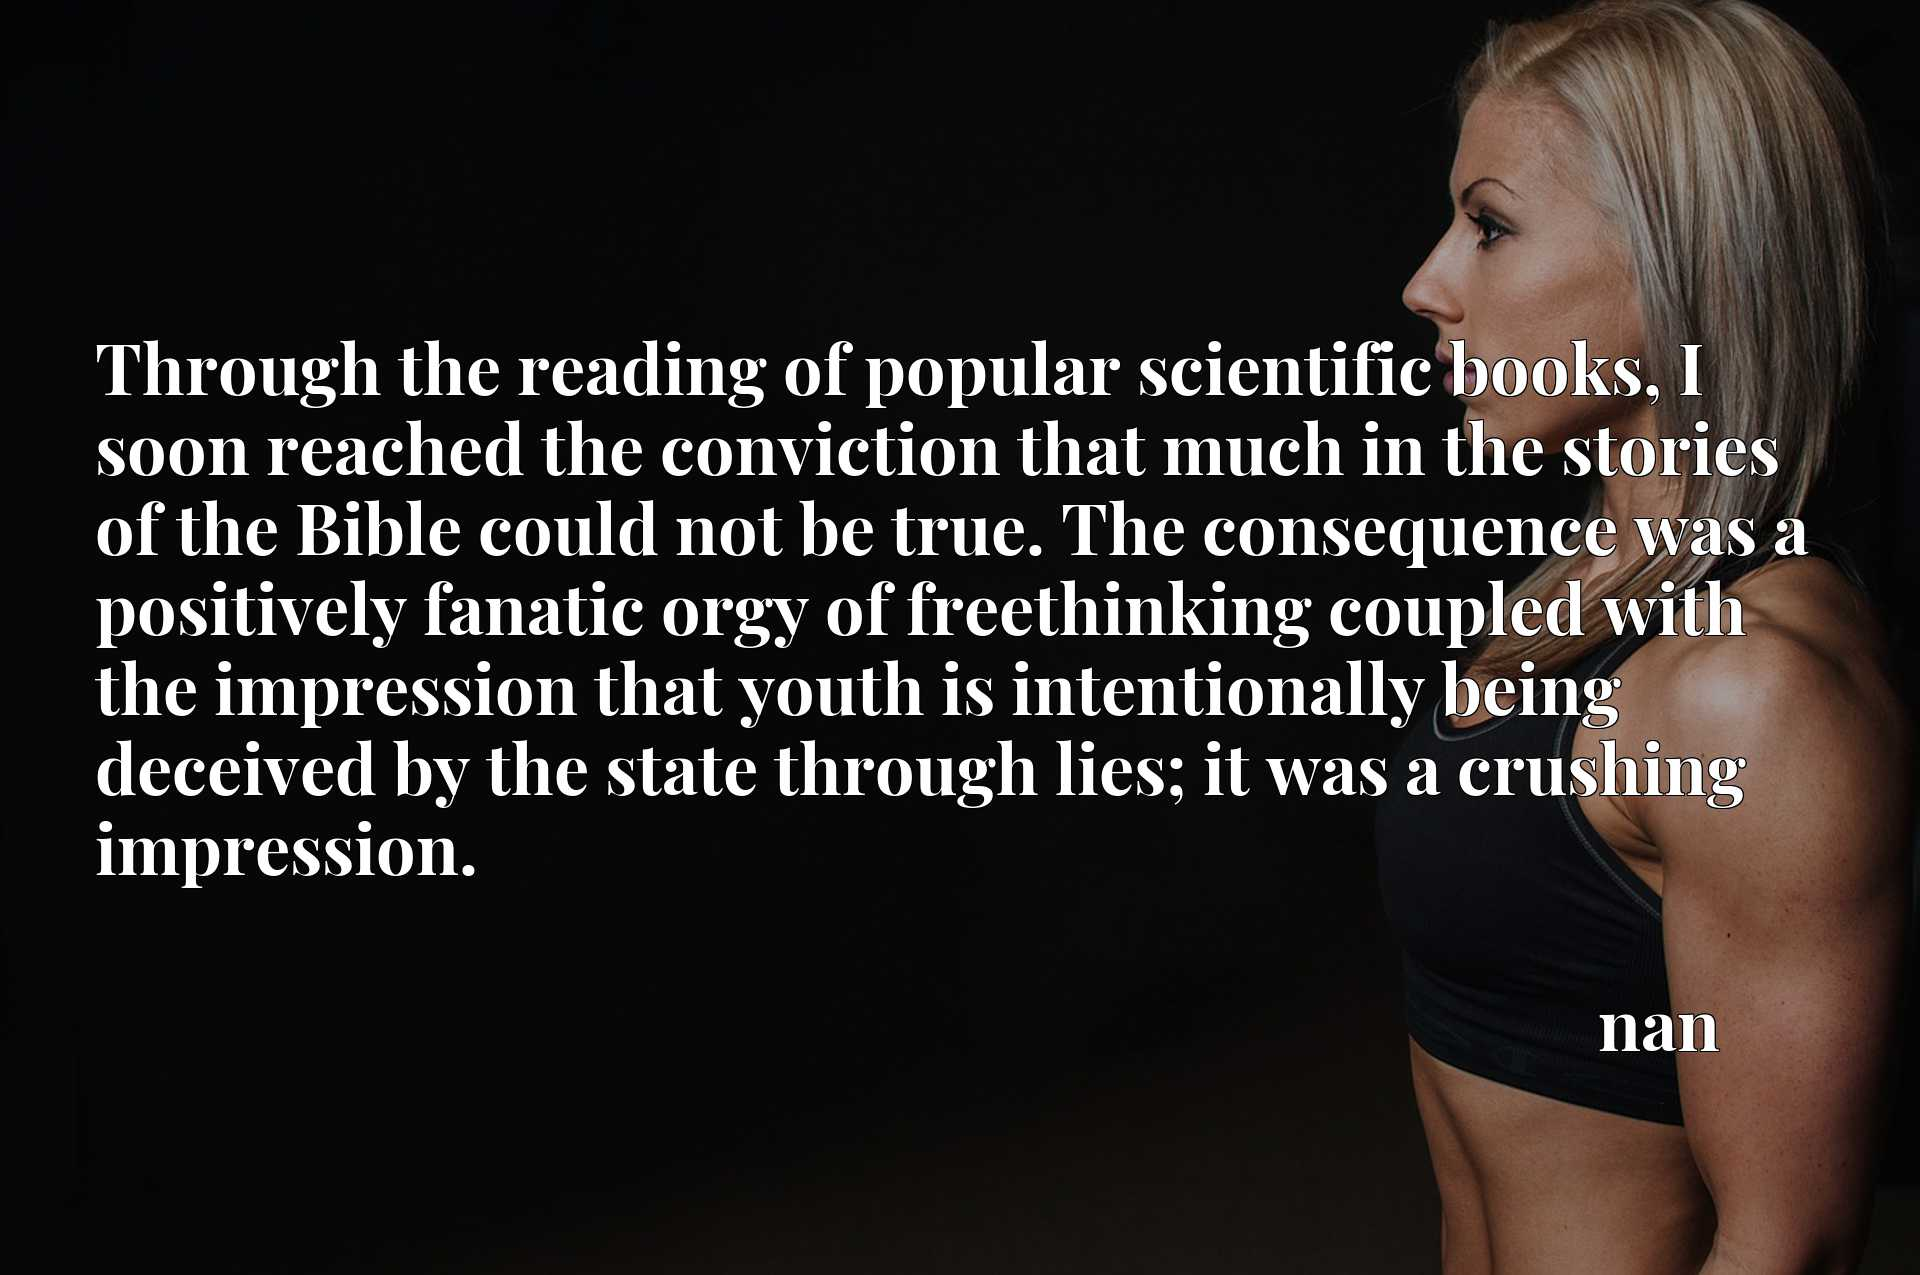 Through the reading of popular scientific books, I soon reached the conviction that much in the stories of the Bible could not be true. The consequence was a positively fanatic orgy of freethinking coupled with the impression that youth is intentionally being deceived by the state through lies; it was a crushing impression.